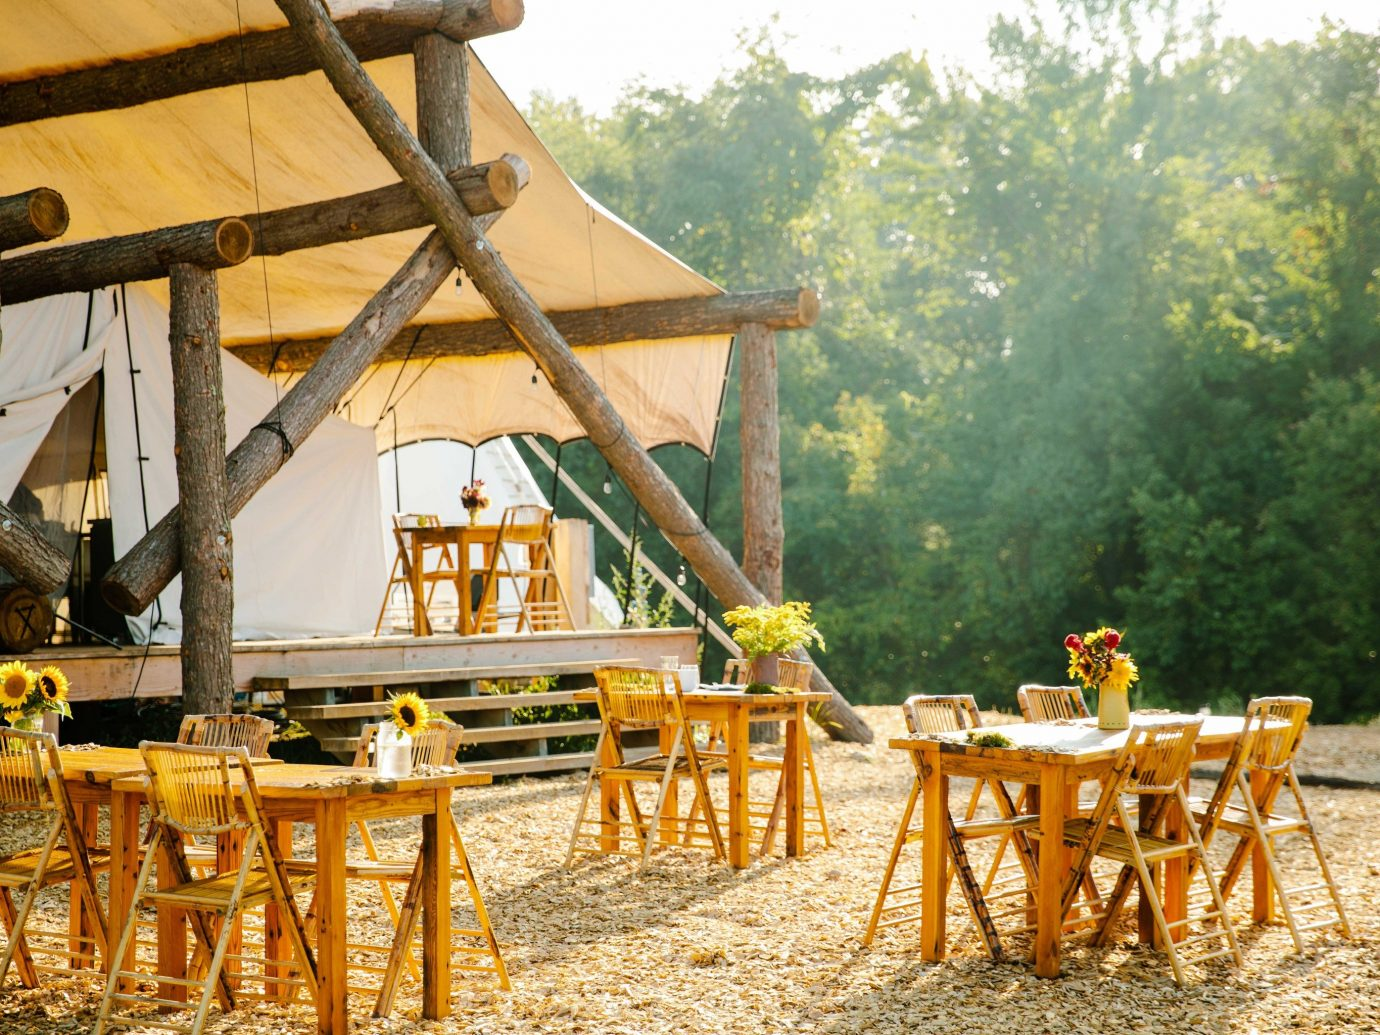 Glamping Luxury Travel New York Trip Ideas yellow wood tree outdoor structure recreation plant landscape